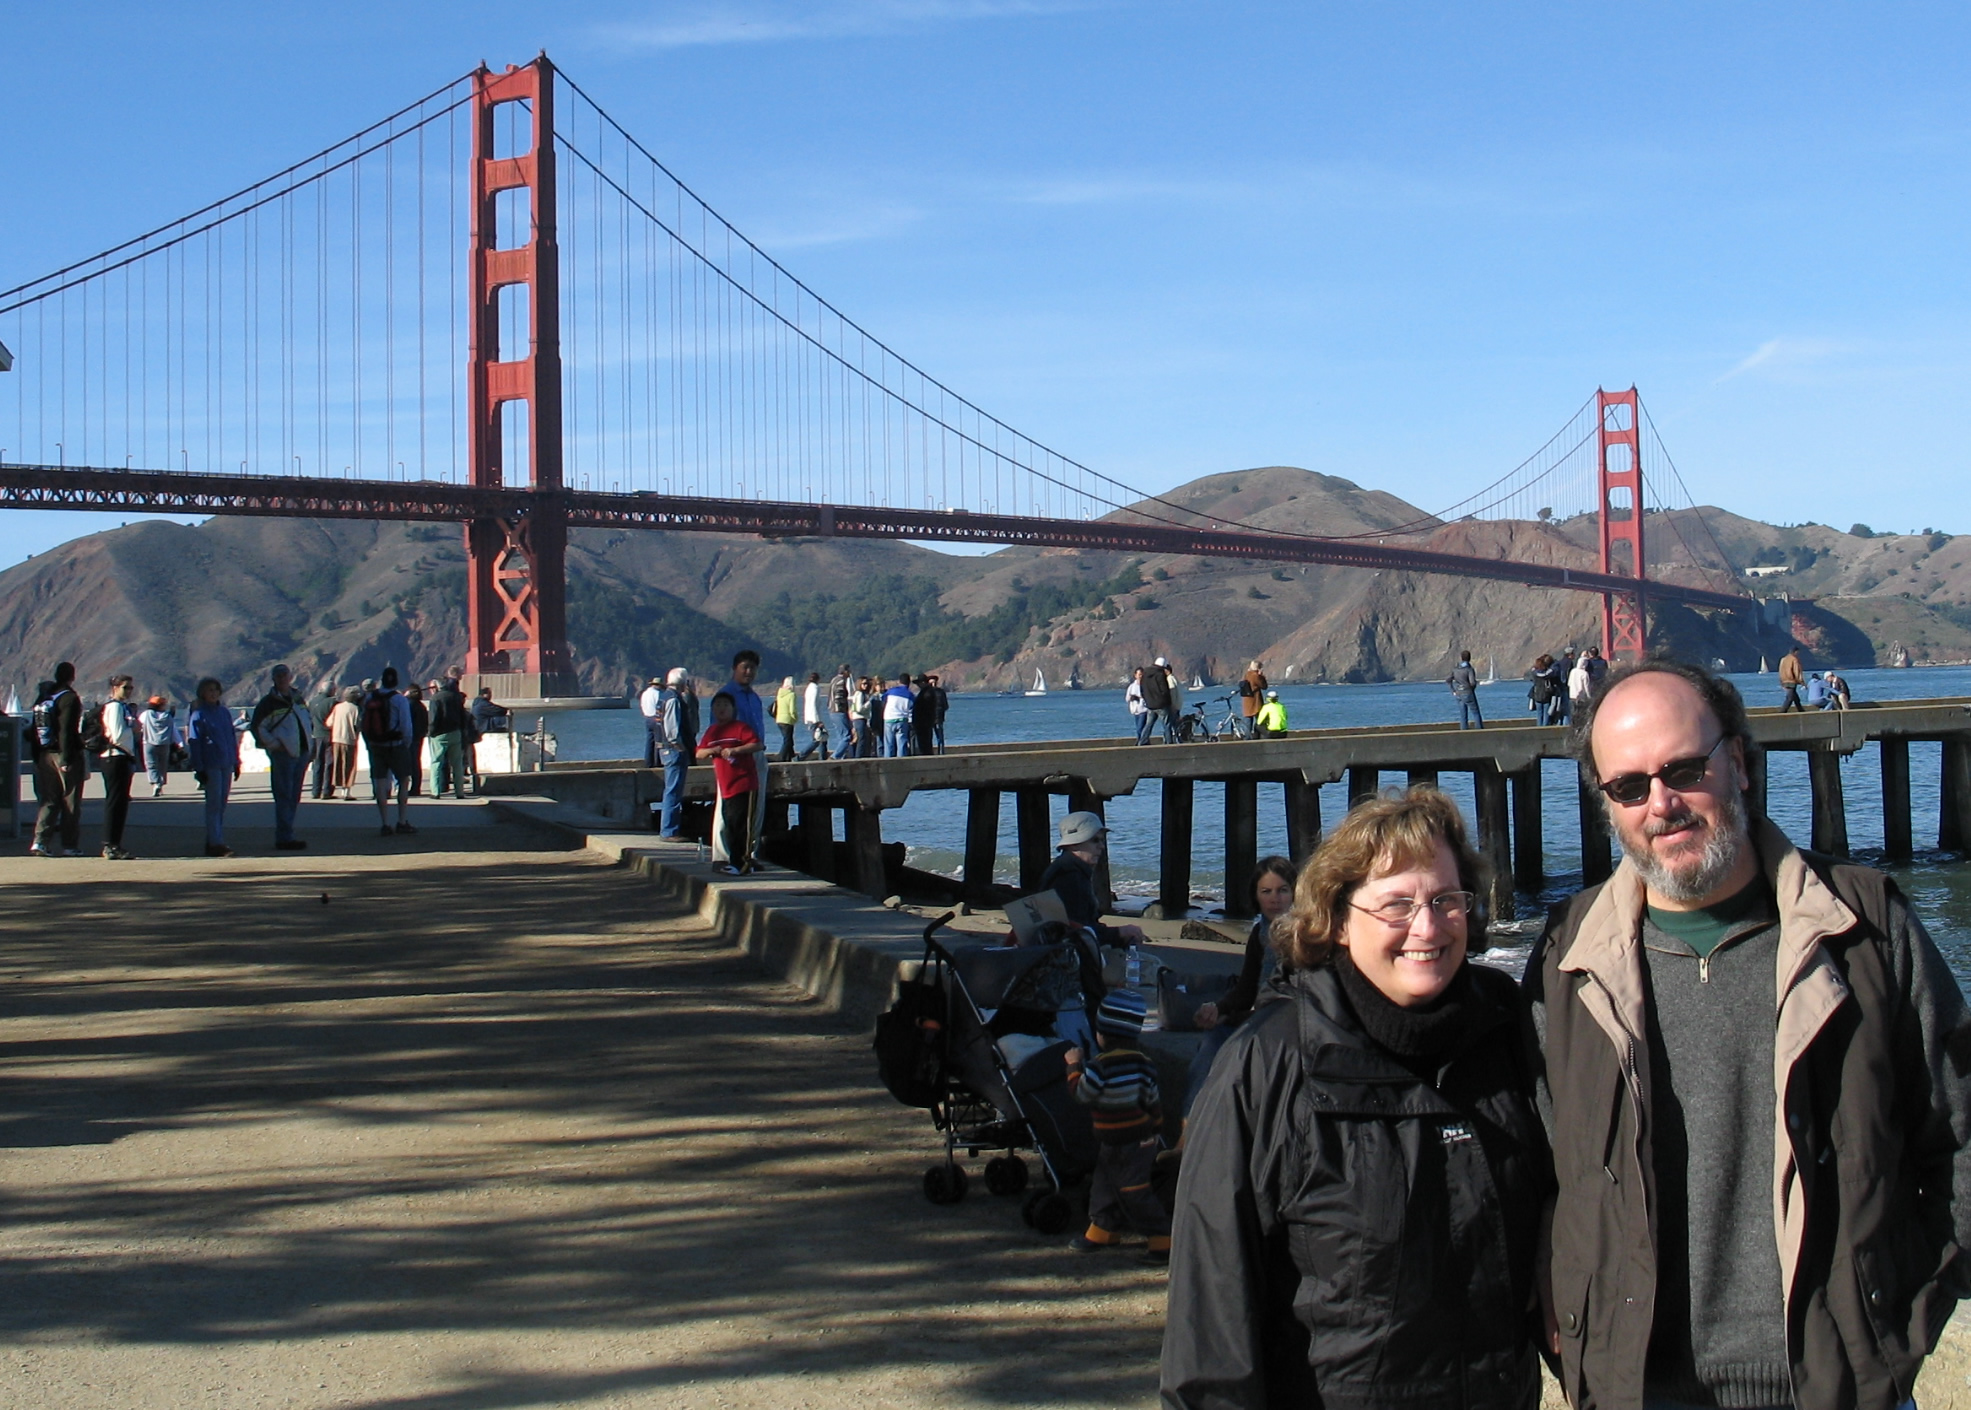 Peter and Billie Jo at Crissy Field